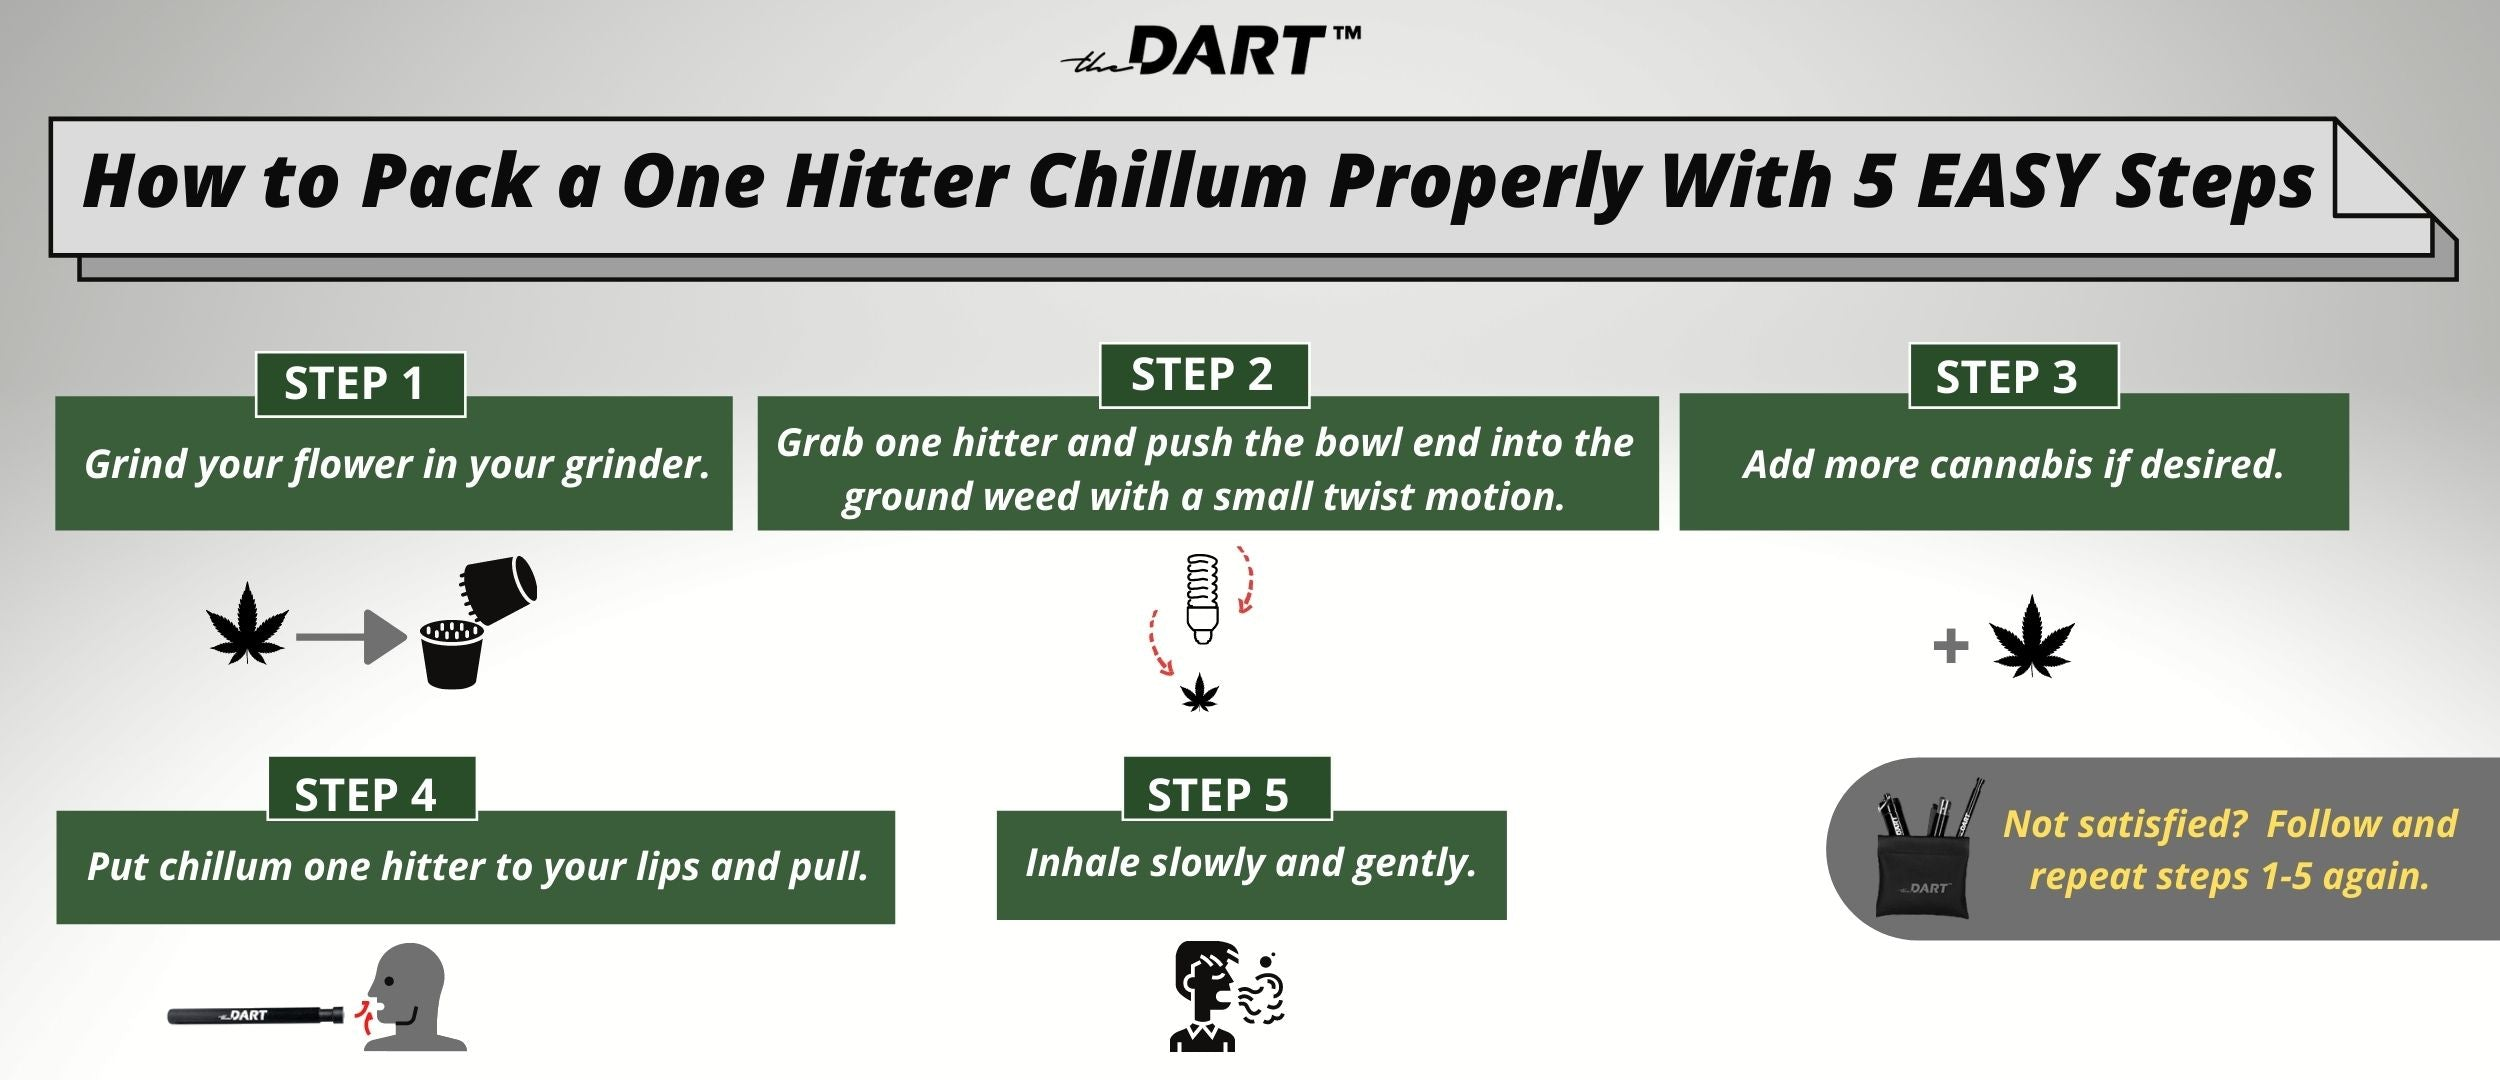 how to pack a chillum